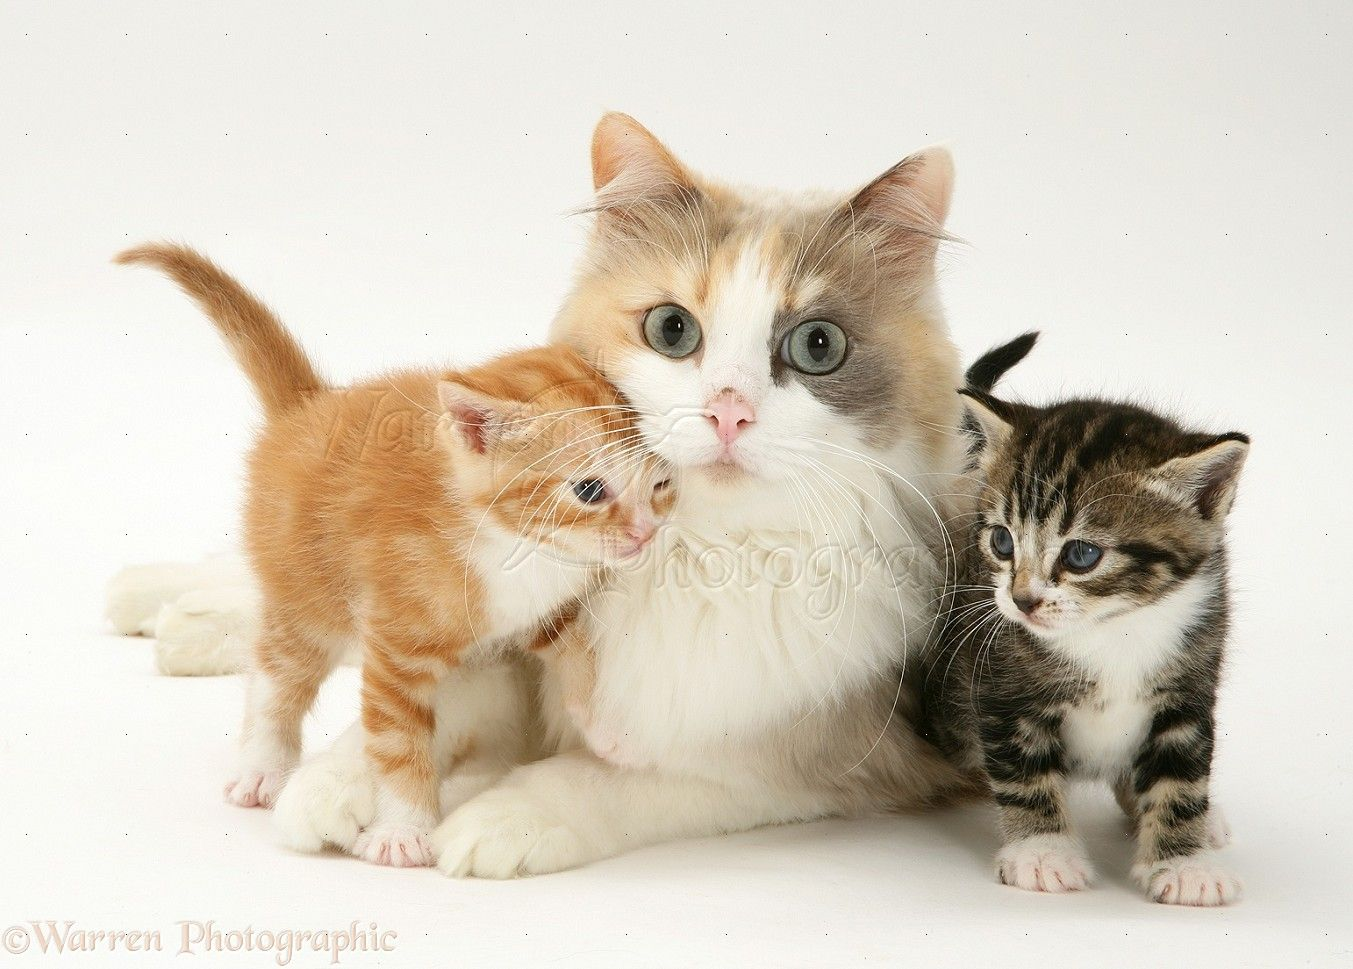 WP Mother cat and kittens Learn more about how to care for